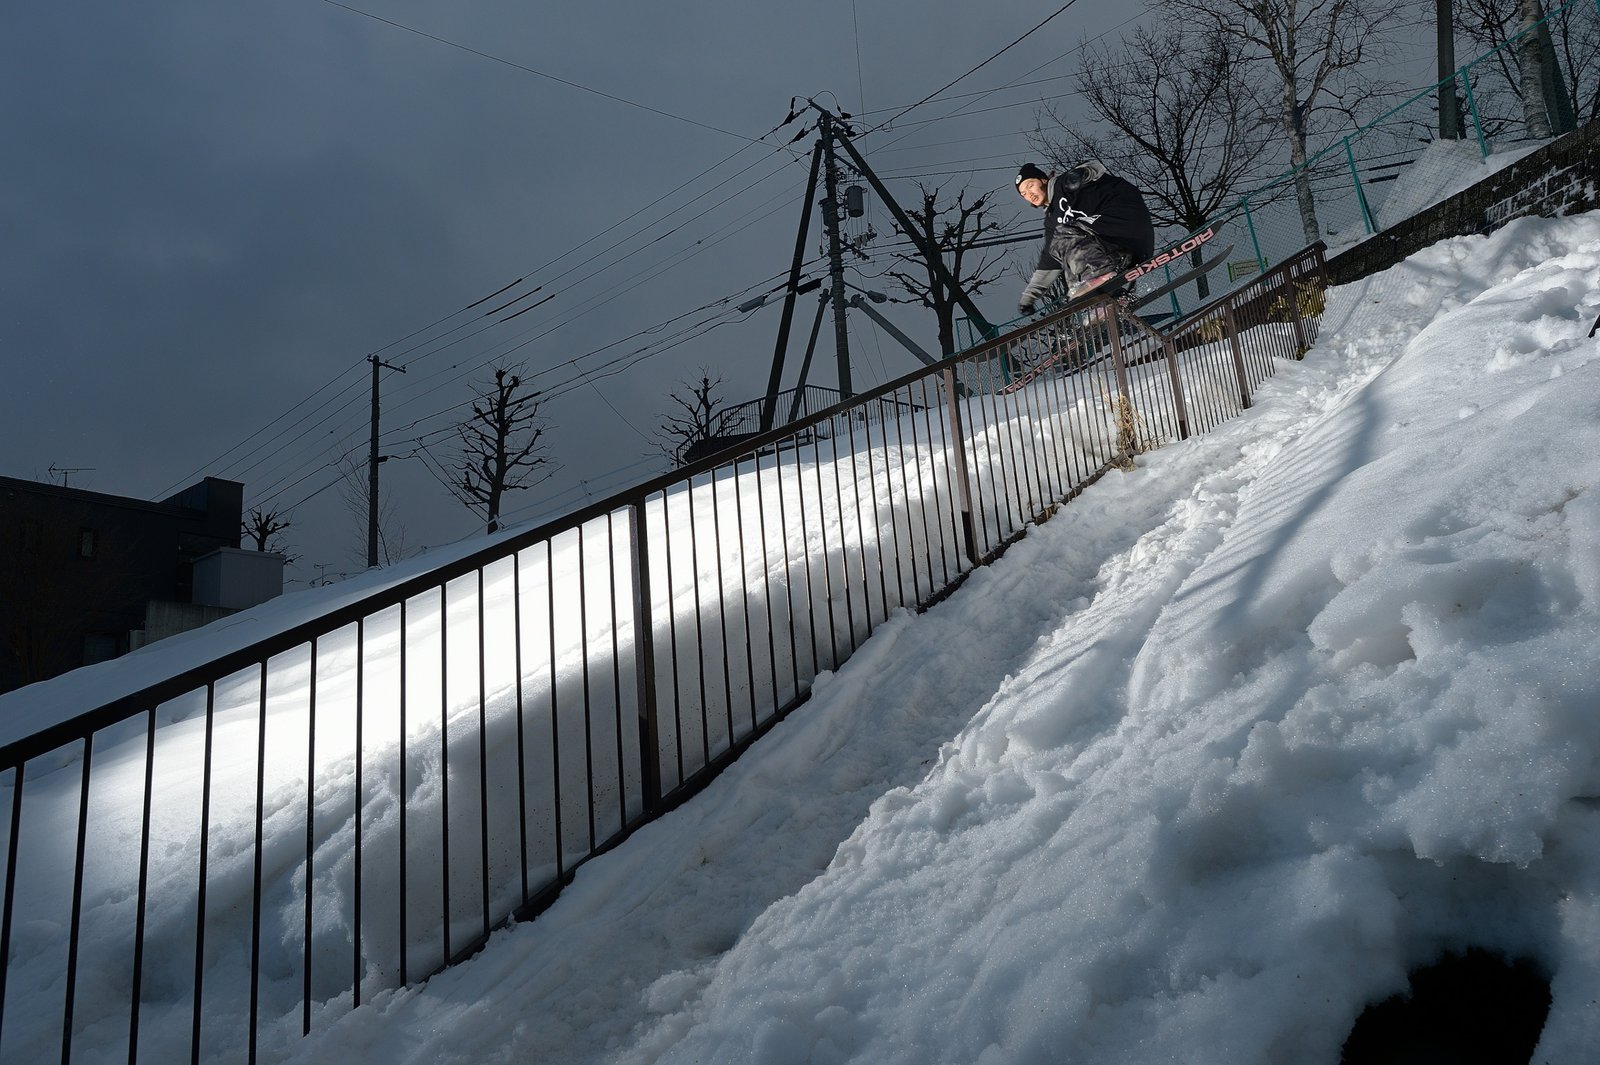 TBS slide on the dub kink rail